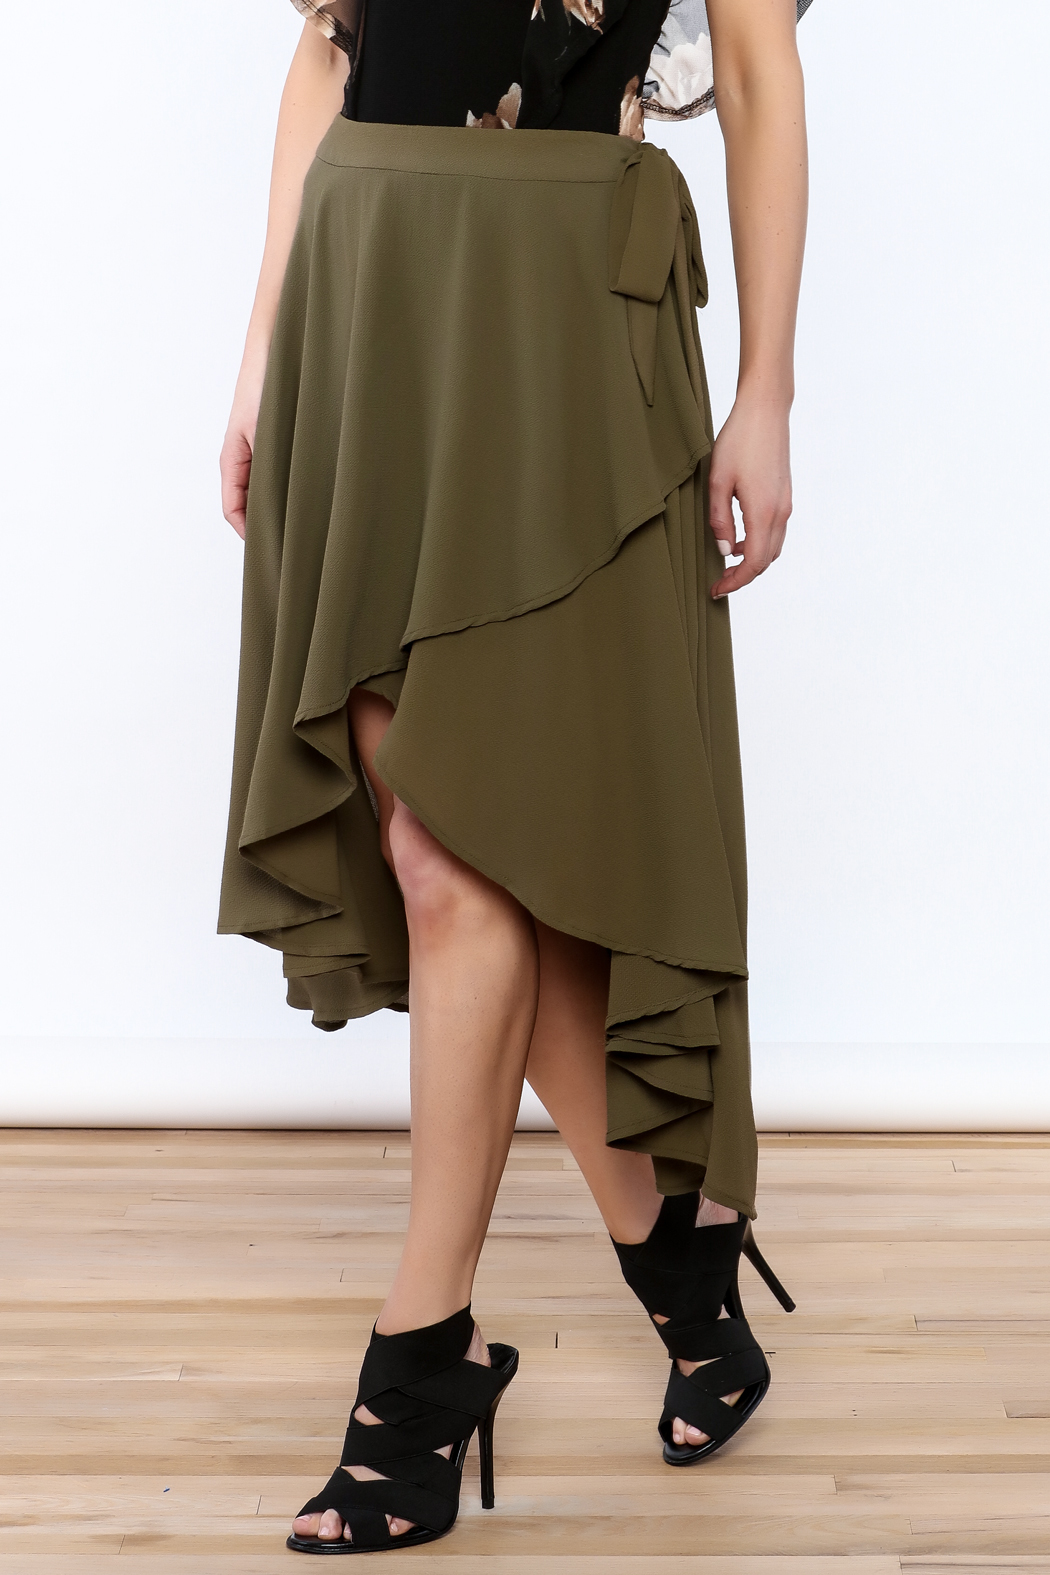 She + Sky Olive Green Midi Skirt - Front Cropped Image